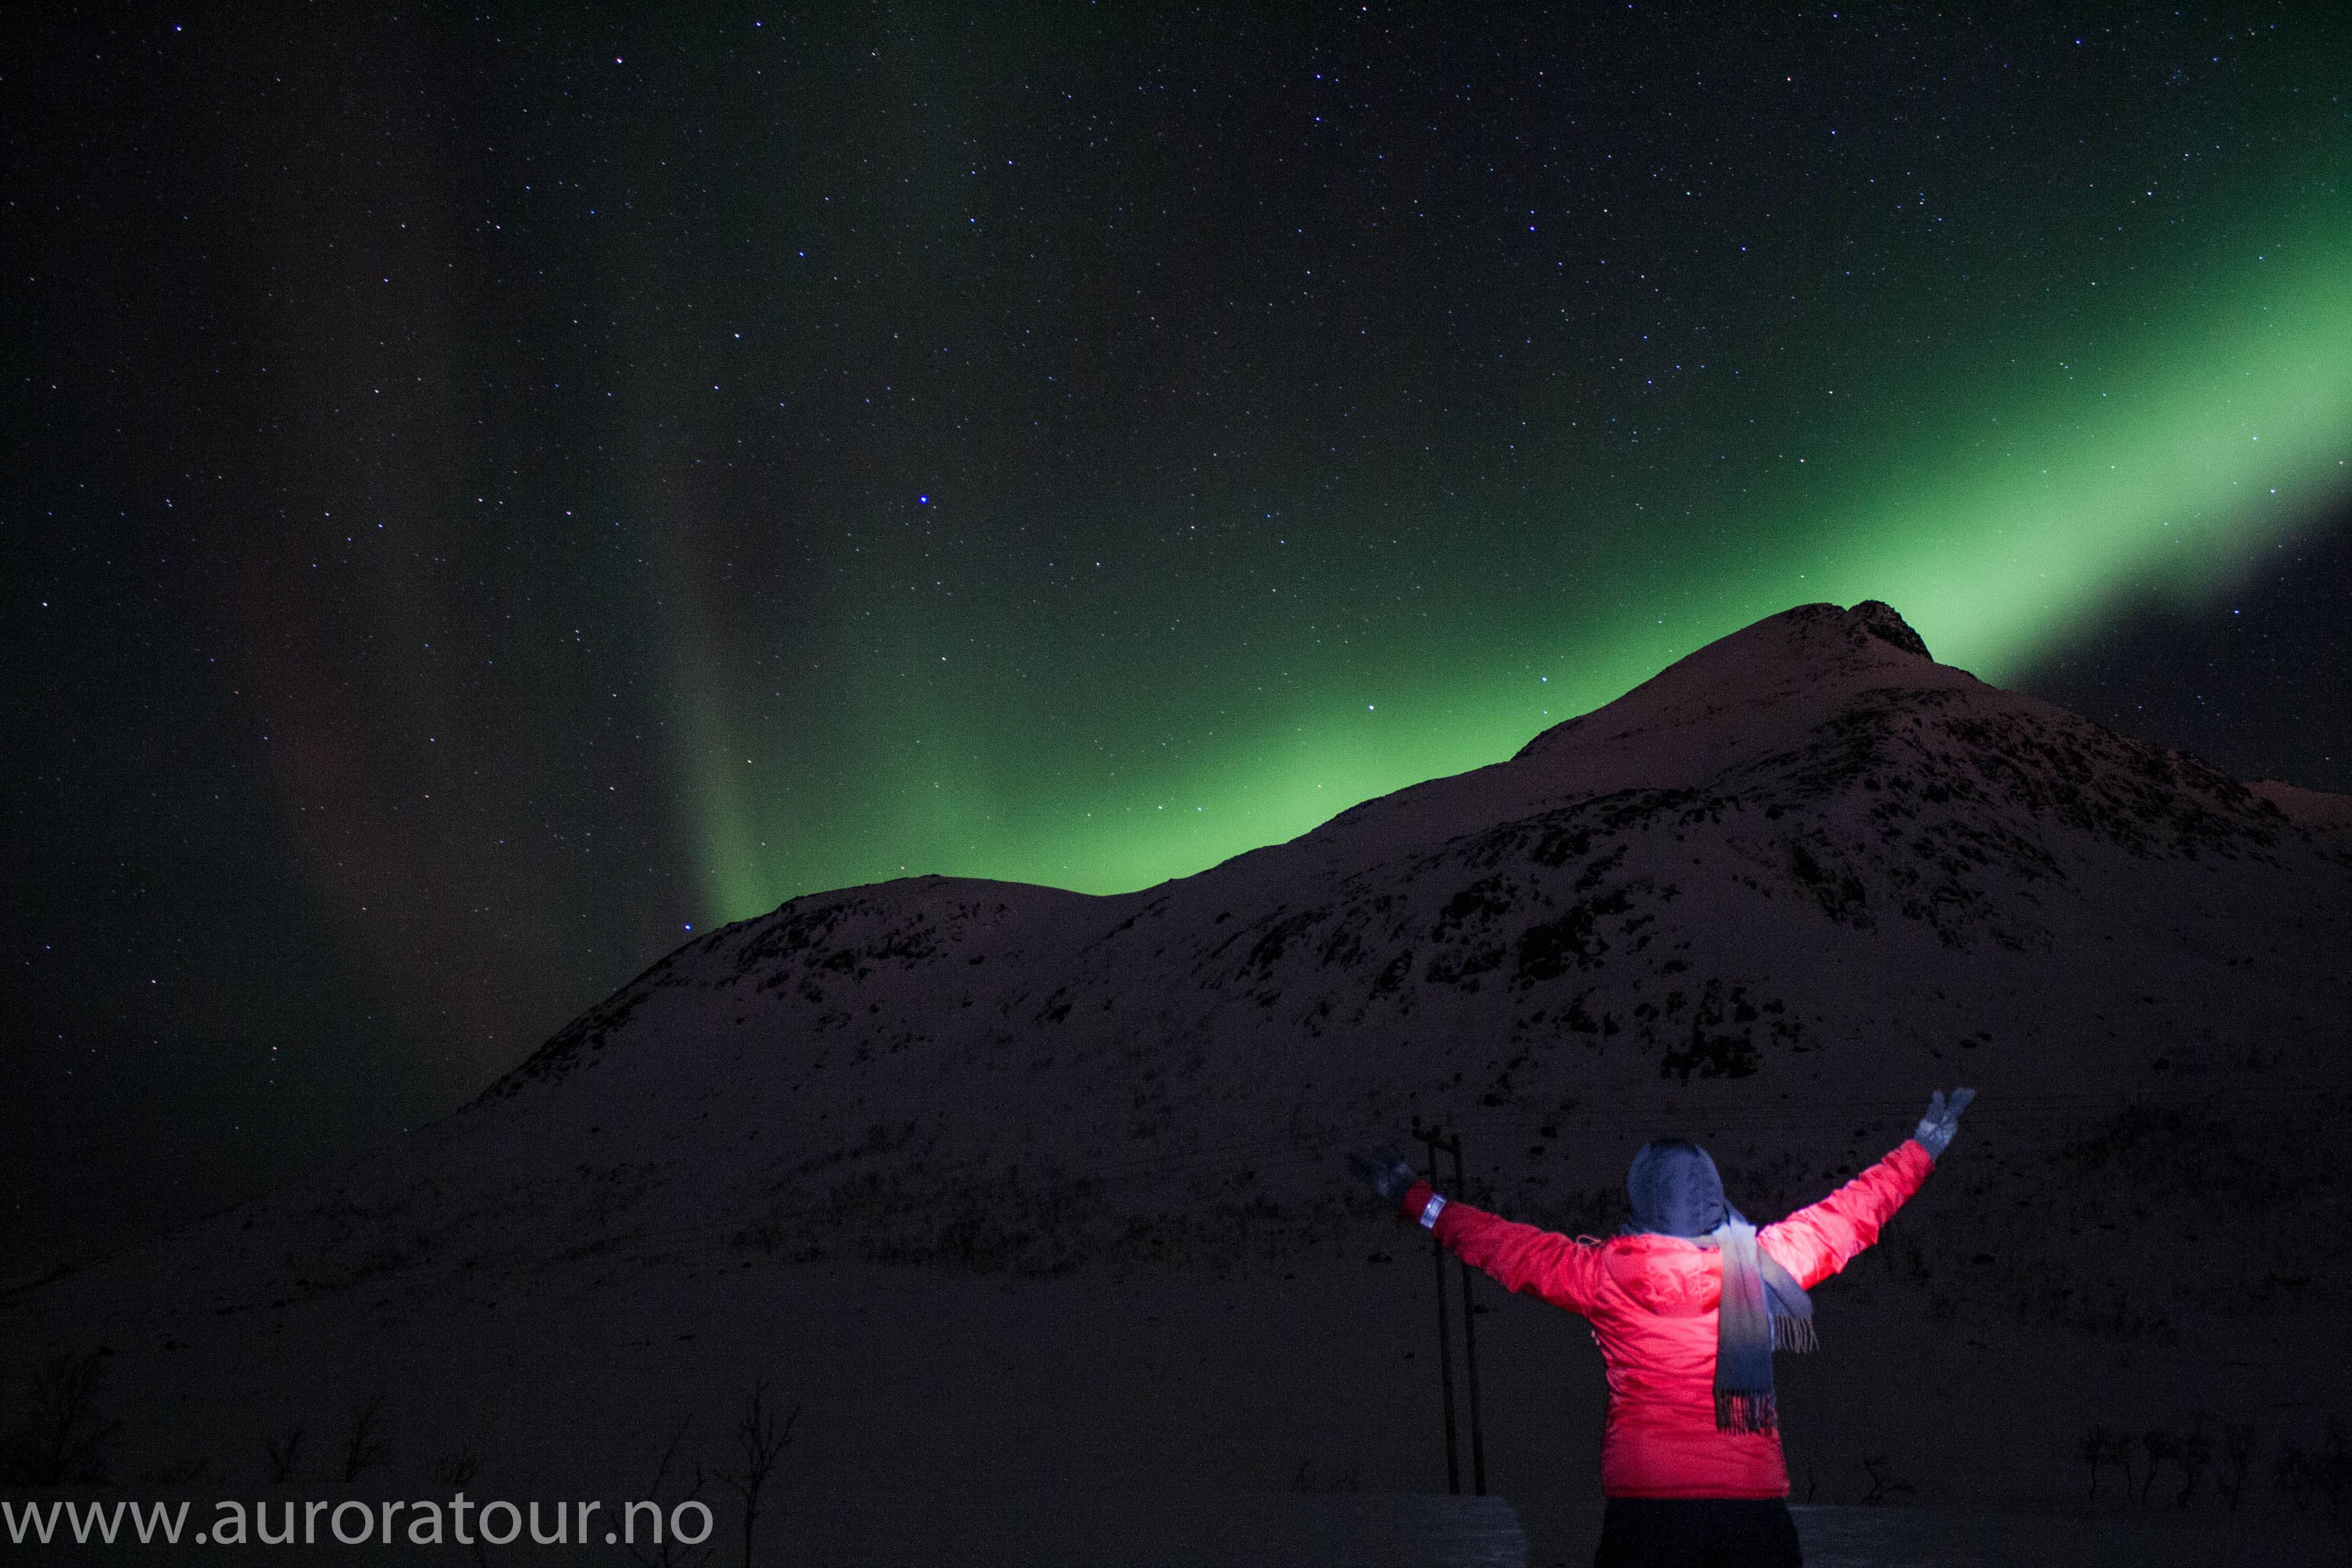 Aurora Tour - Your Northern Lights Guide in Tromsø